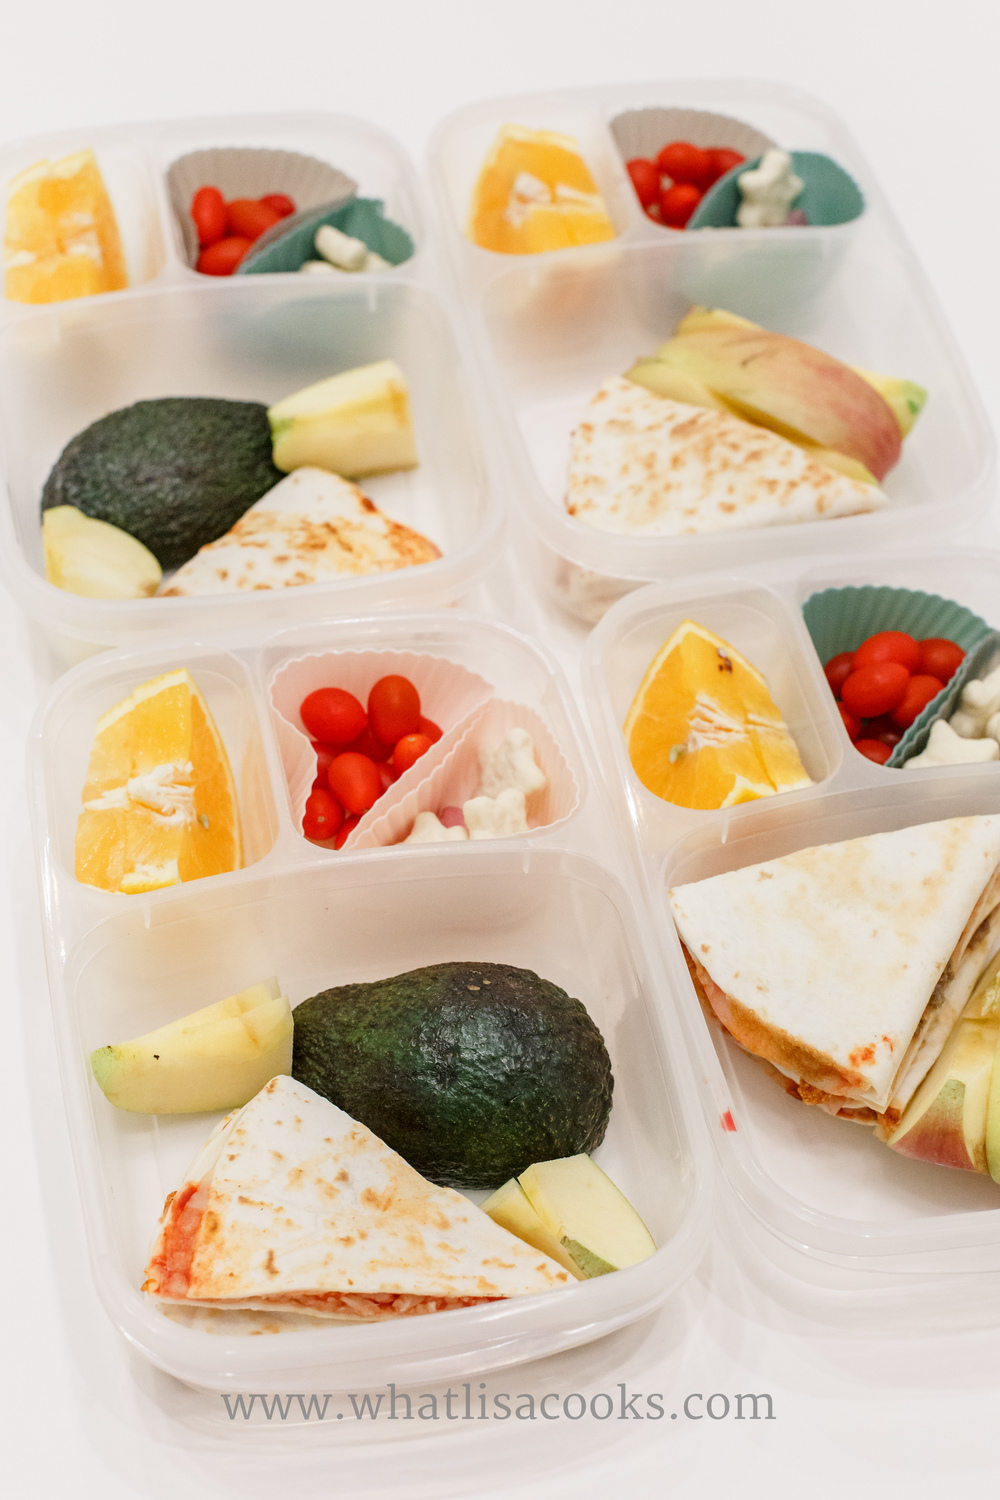 Pizzadillas: tortilla with mozzarella cheese and tomato sauce.  With apples, avocado, tomatos, orange slices, and yogurt covered star cookies.